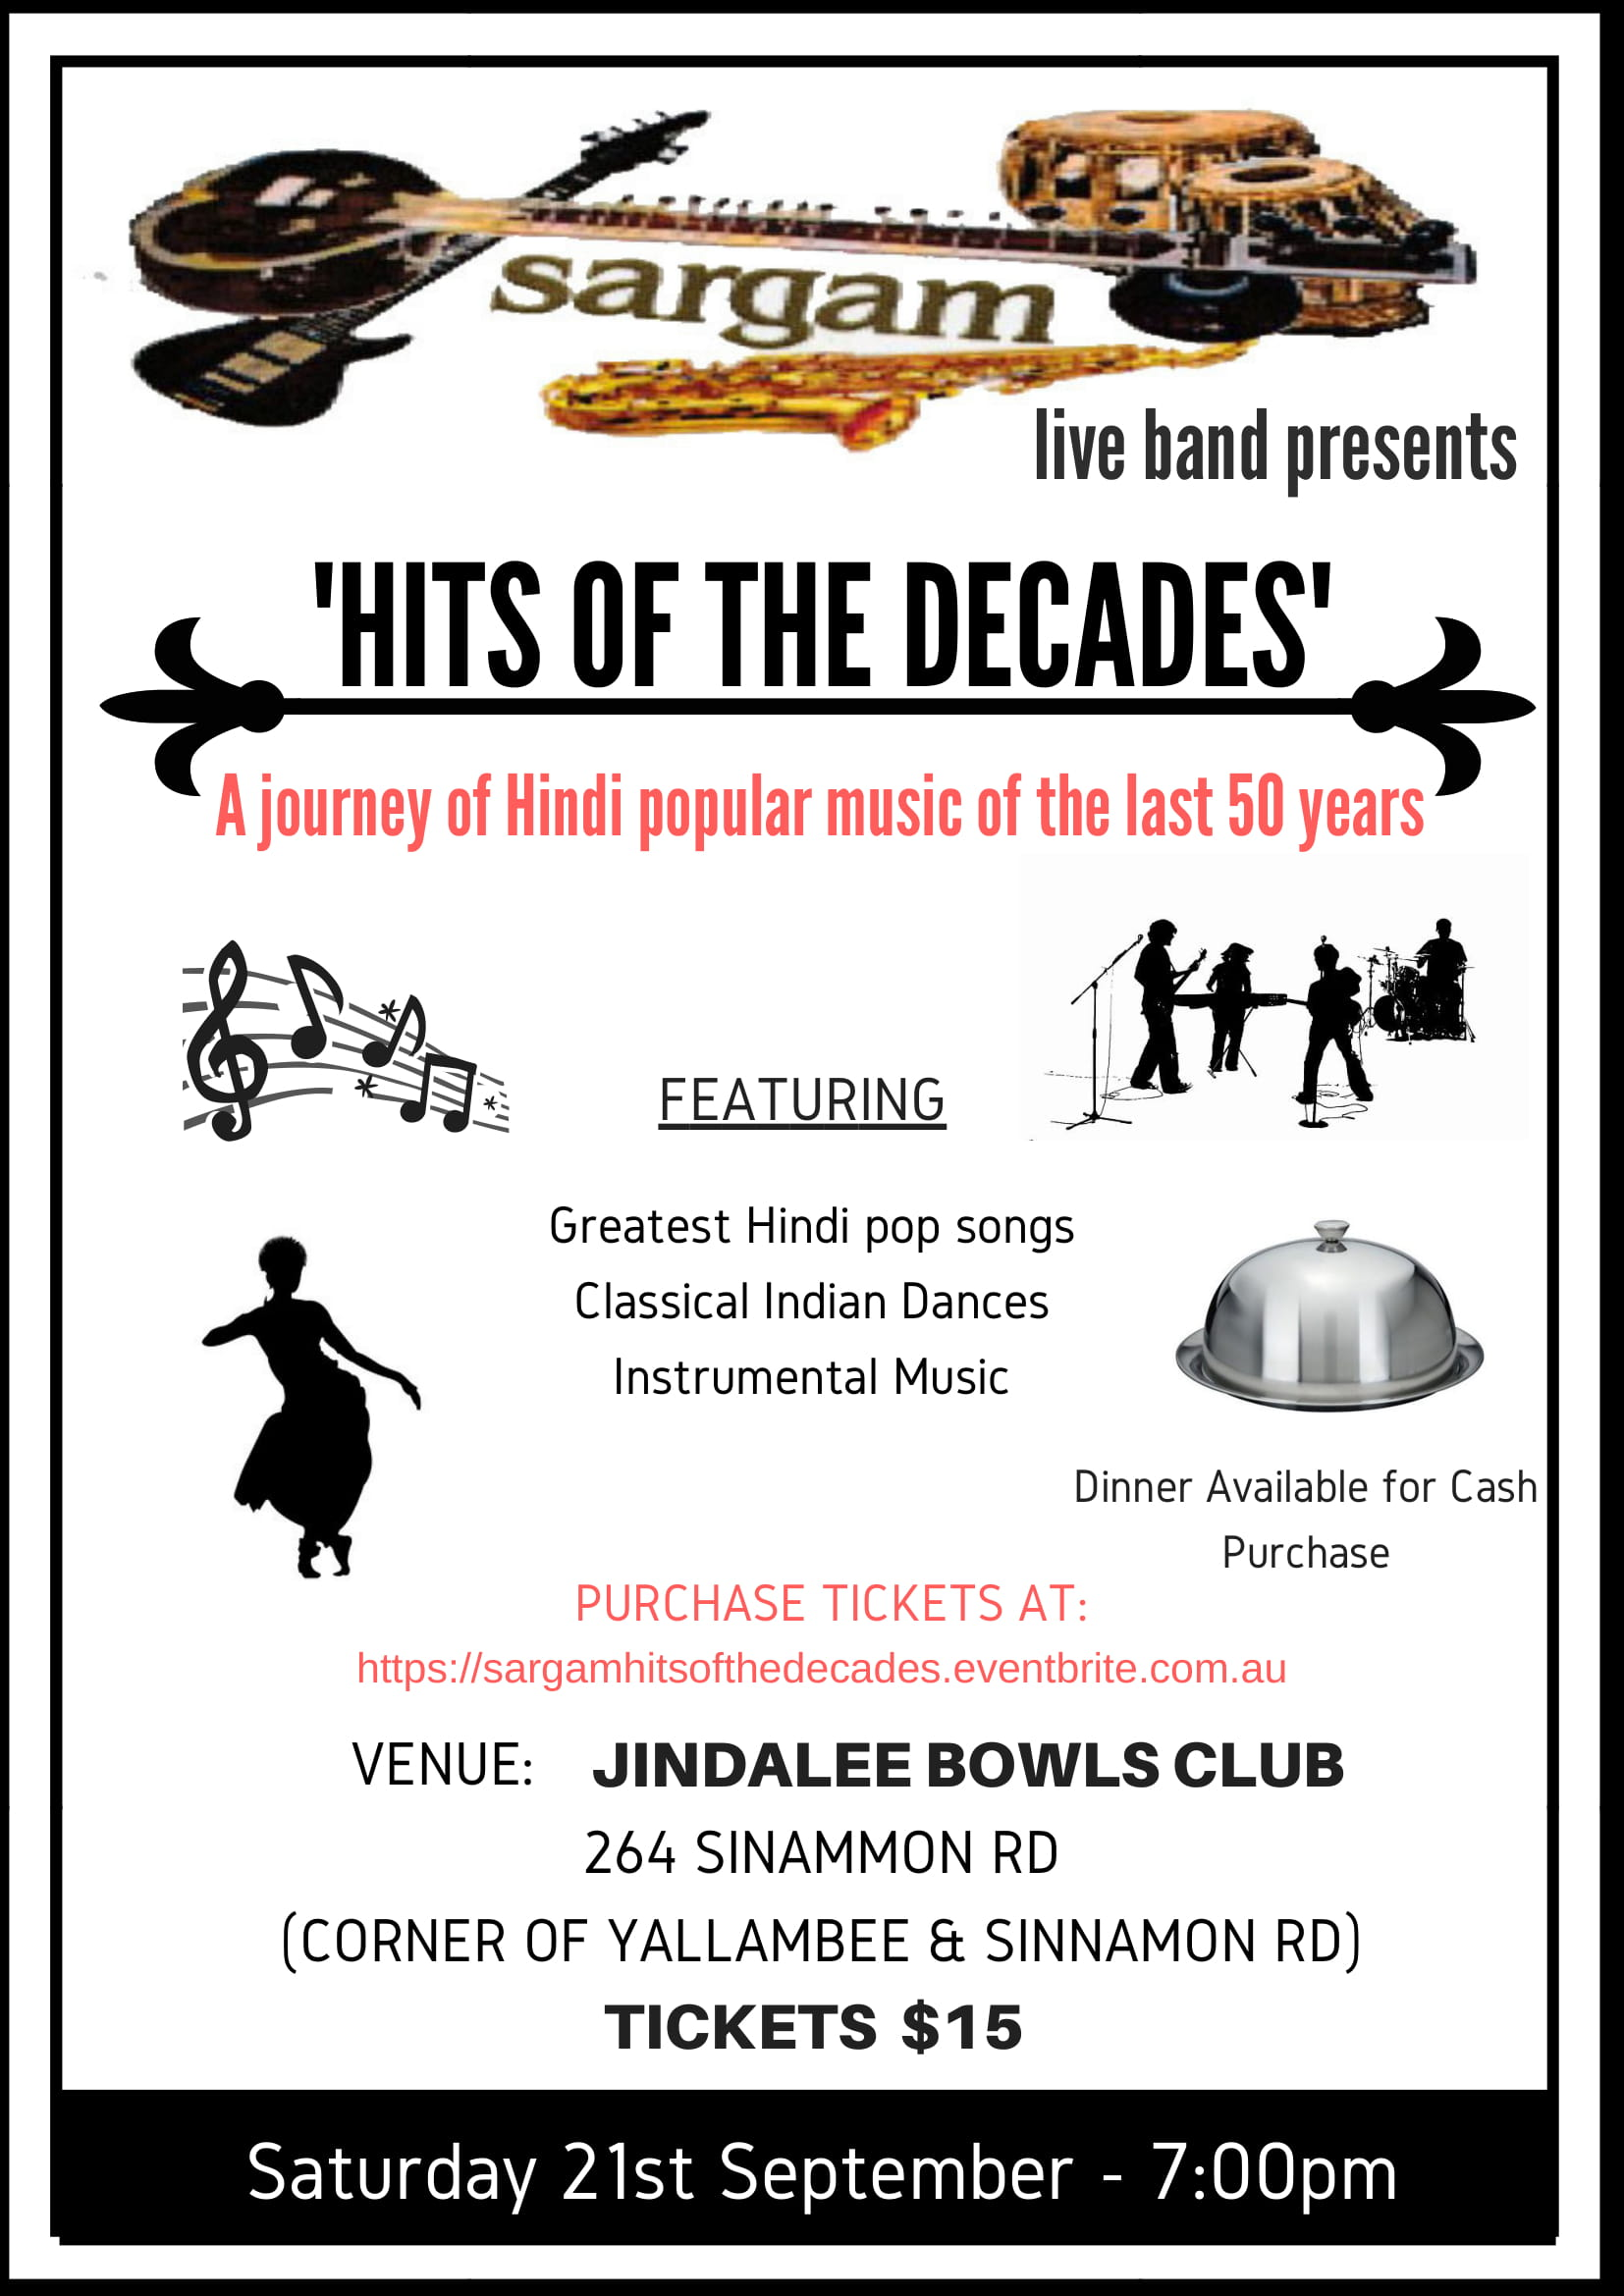 Hits of the Decade Flyer Correct